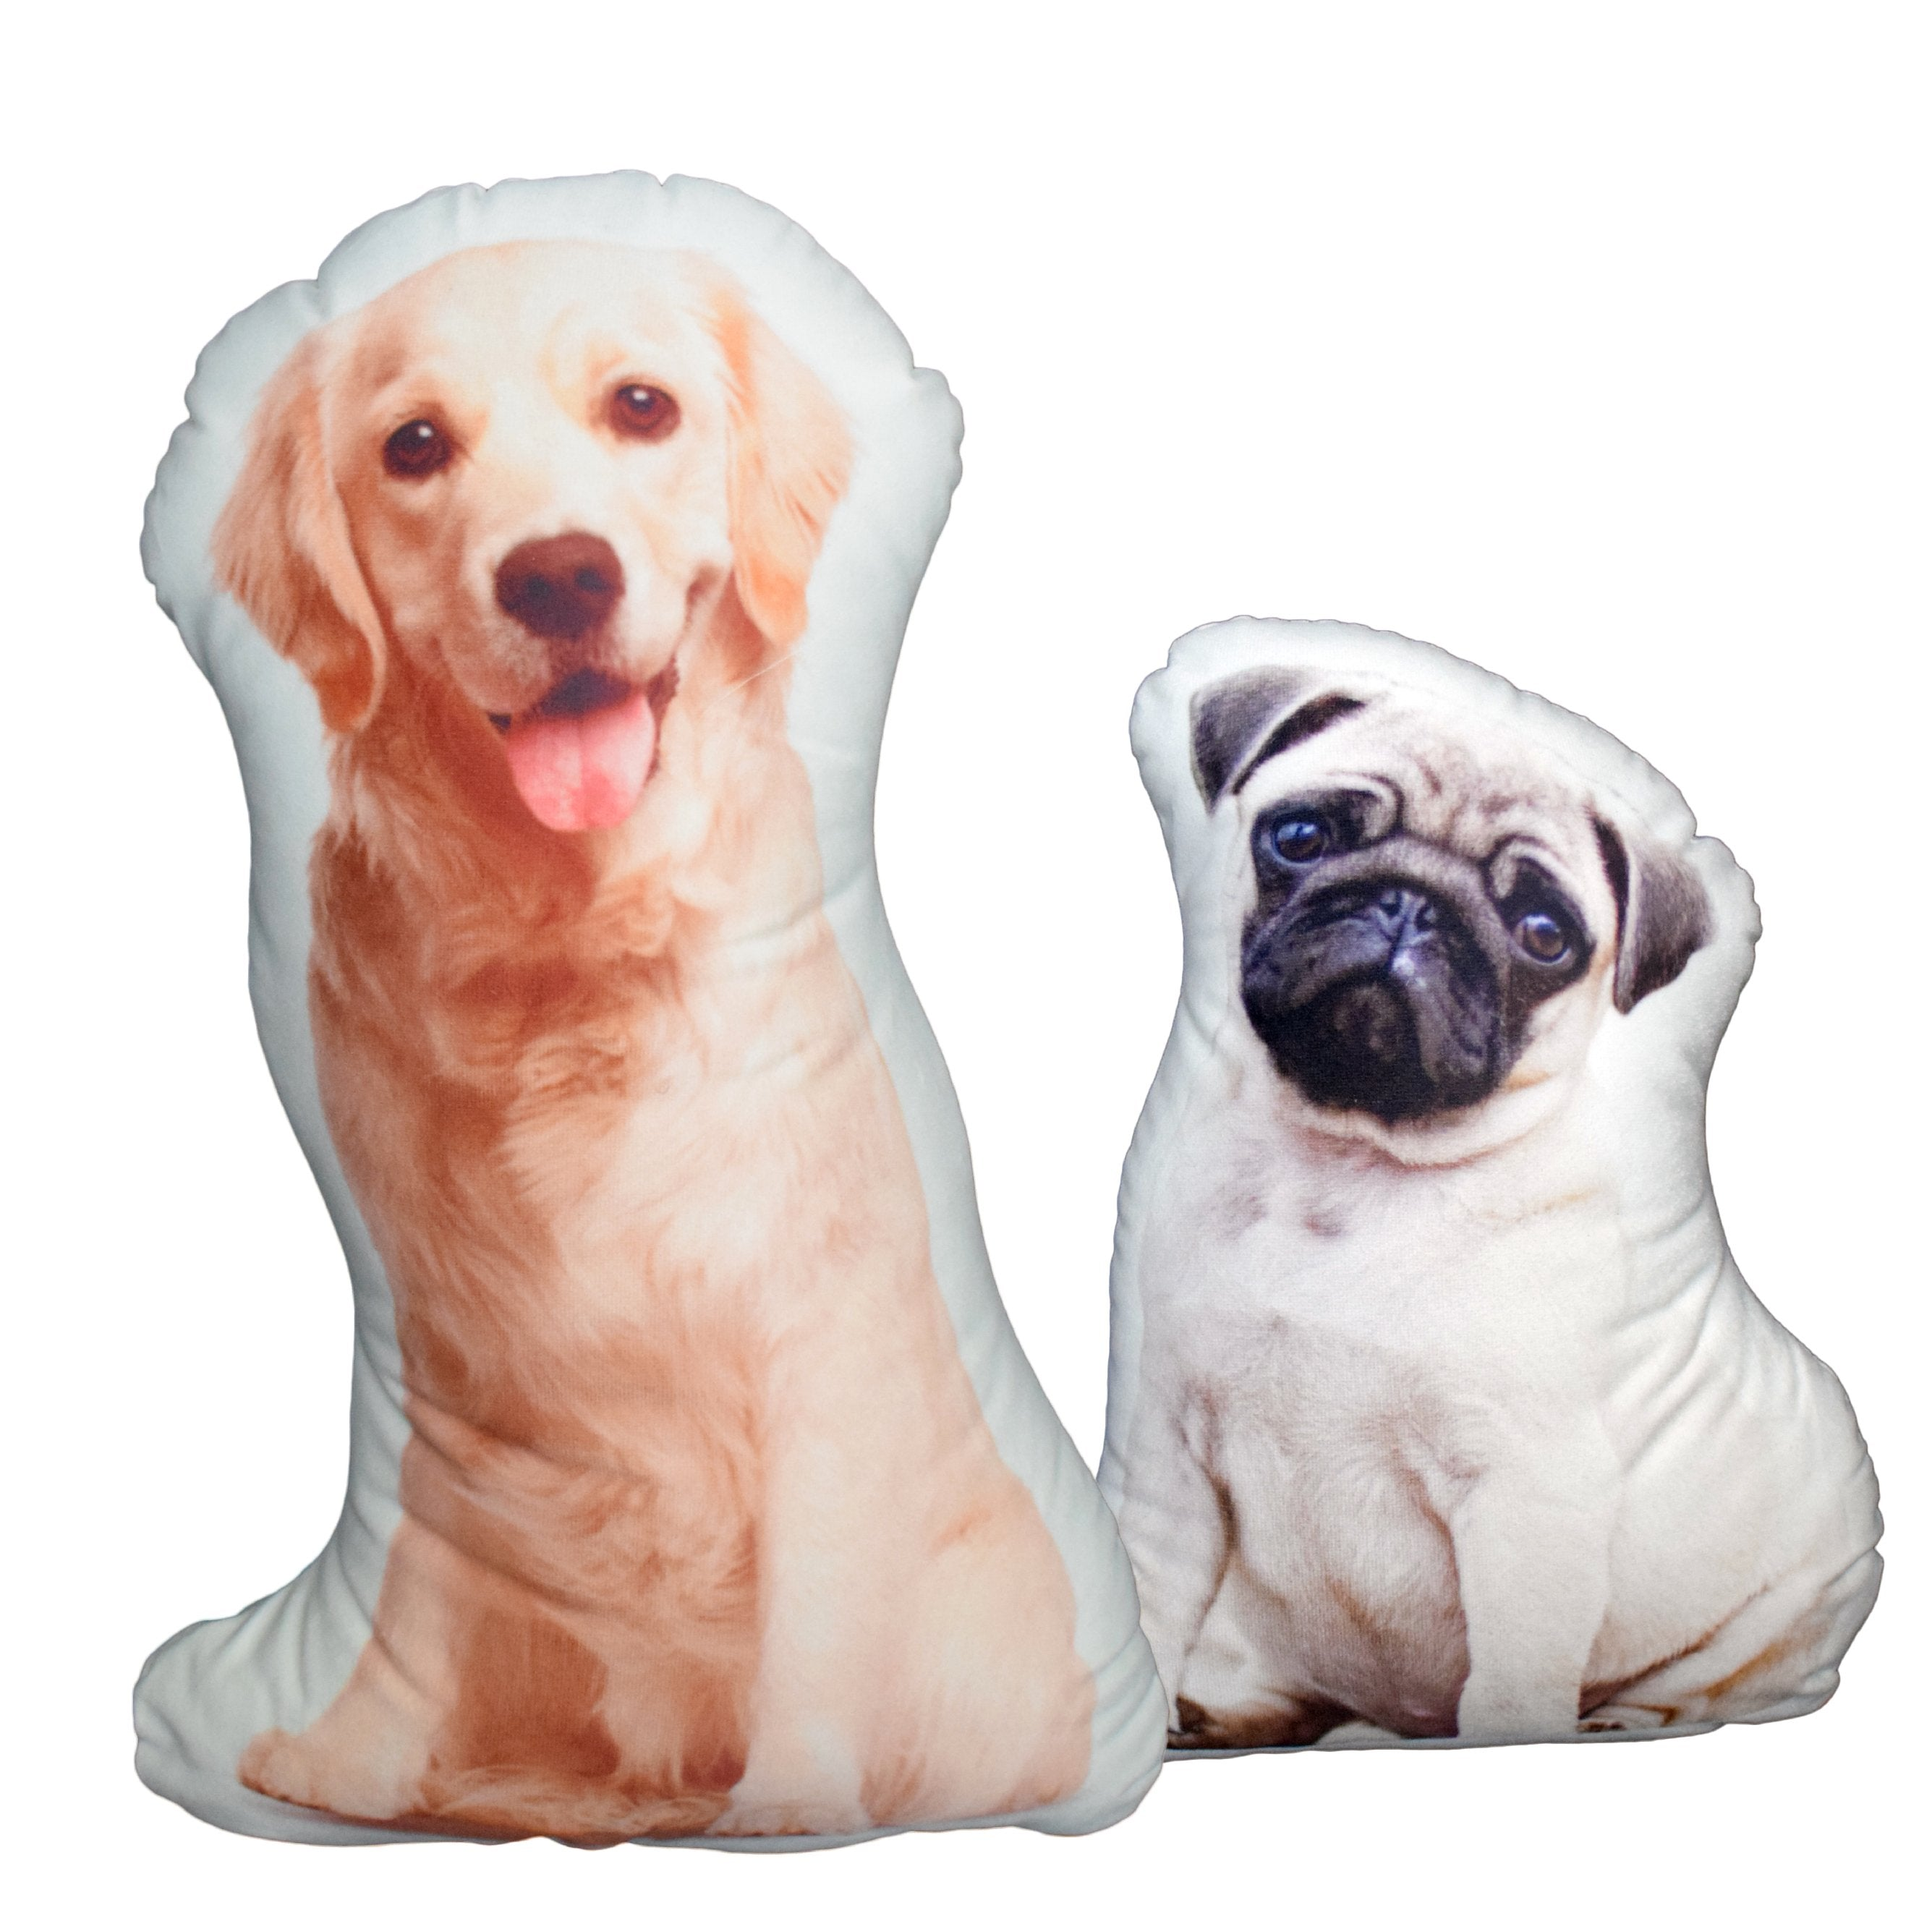 b6b1d6747061c Personalized Dog Picture Pillow (With Your Dog's Picture On It) – Pawjoy